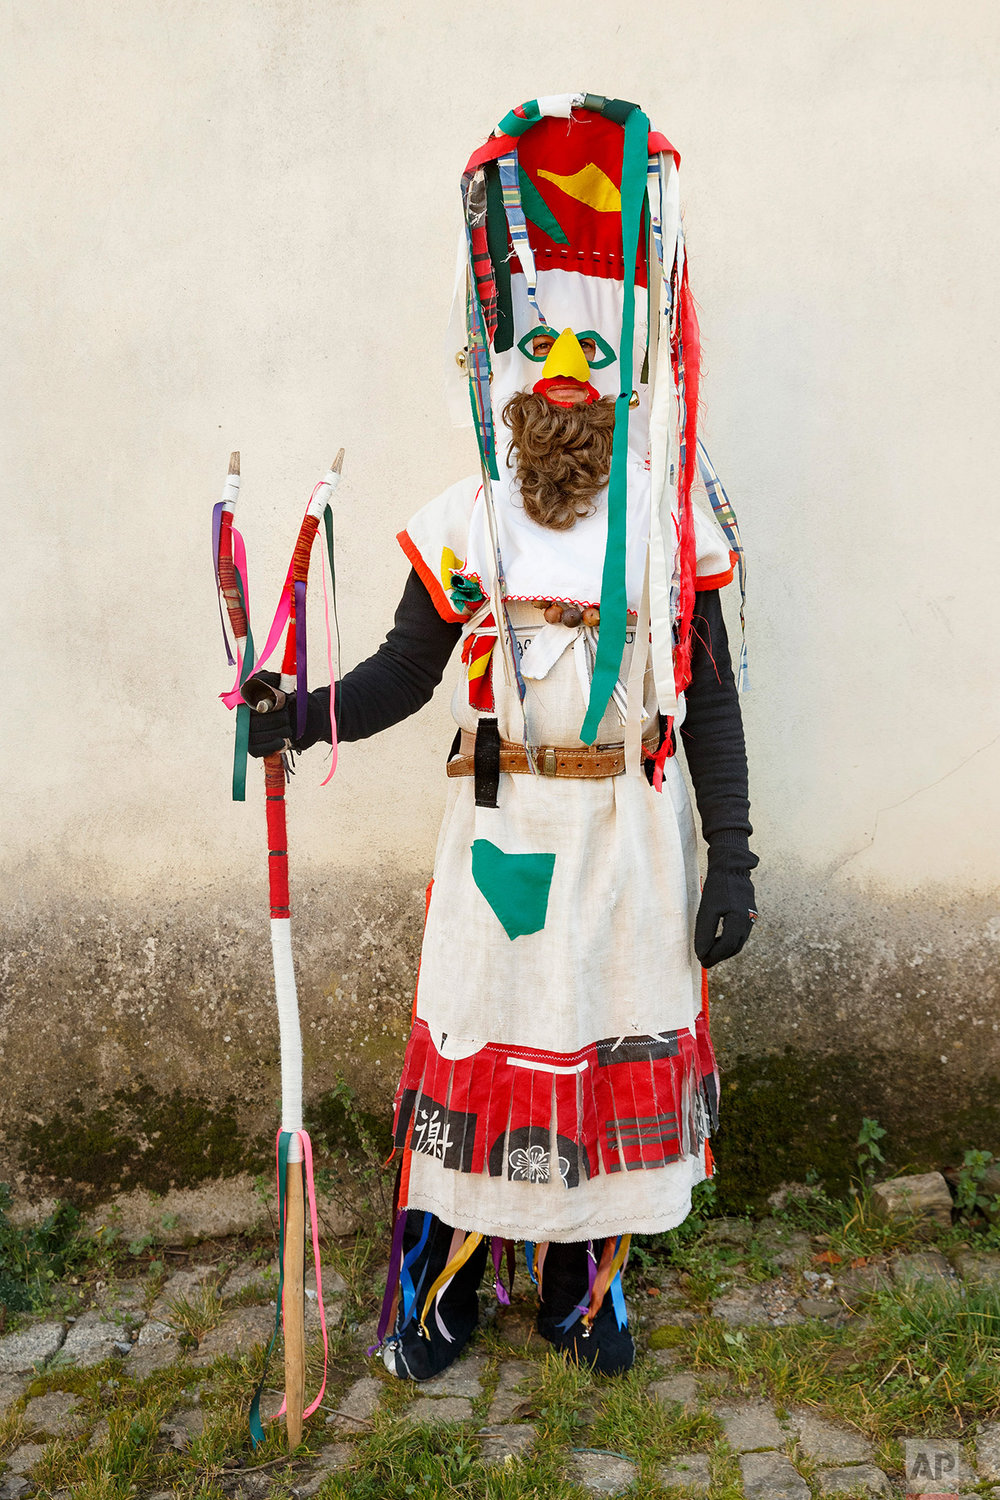 In this photo taken on Saturday, Jan. 7, 2017, a person dressed as a character from 'Visparro de Vigo' masquerade wearing an ancient mask poses for a photo, during a winter masquerade gathering in Salsas, Portugal.  (AP Photo/Daniel Ochoa de Olza)